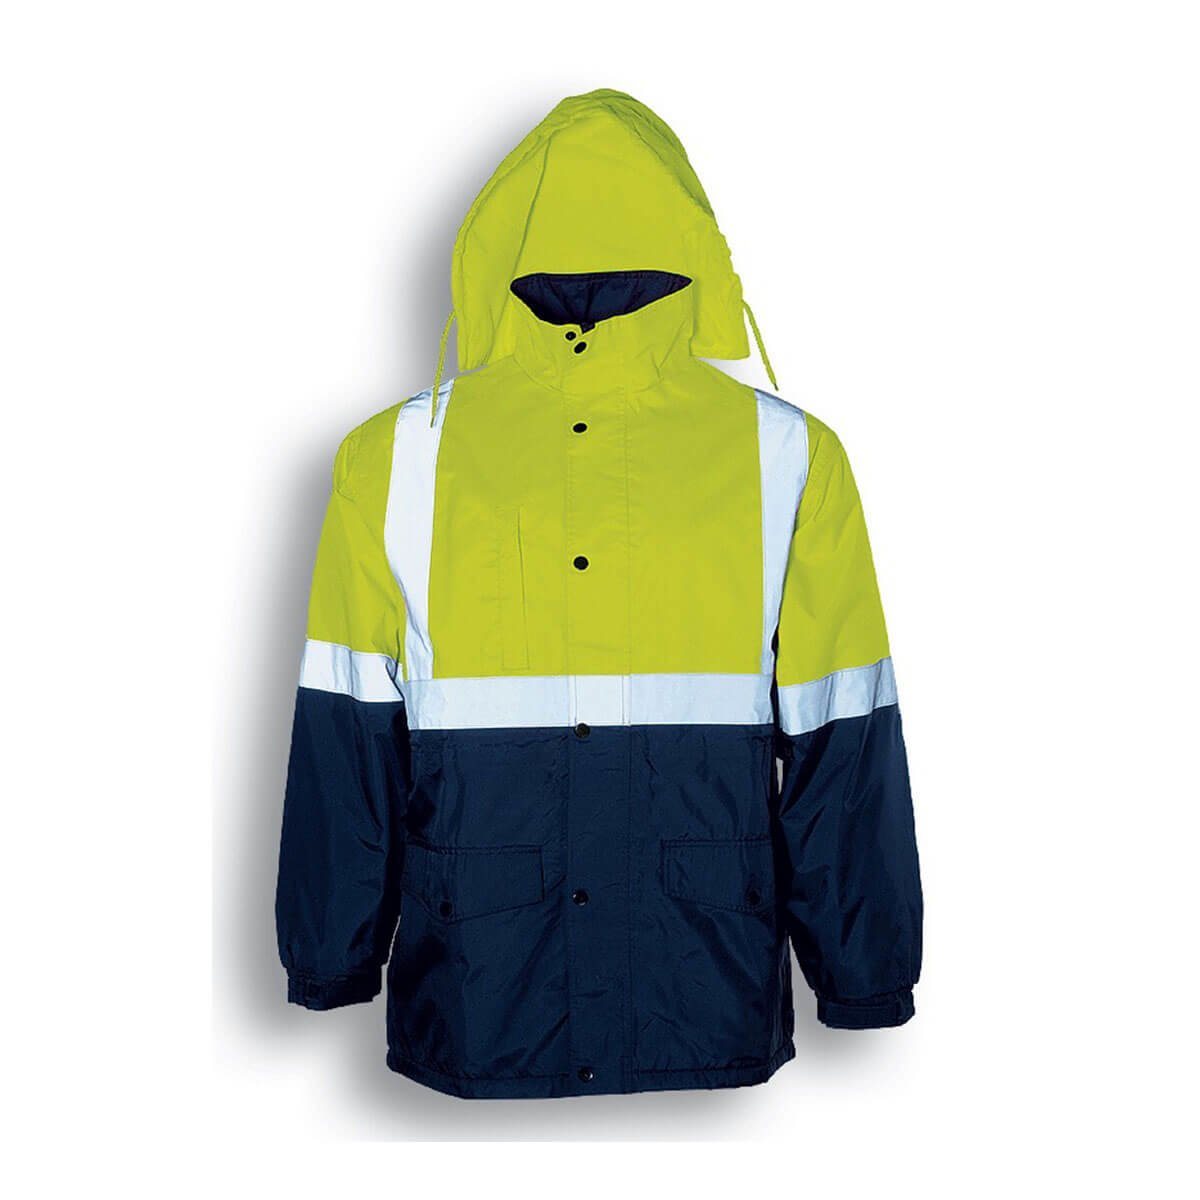 HI-VIS MESH LINING JACKET WITH REFLECTIVE TAPE-Lime / Navy